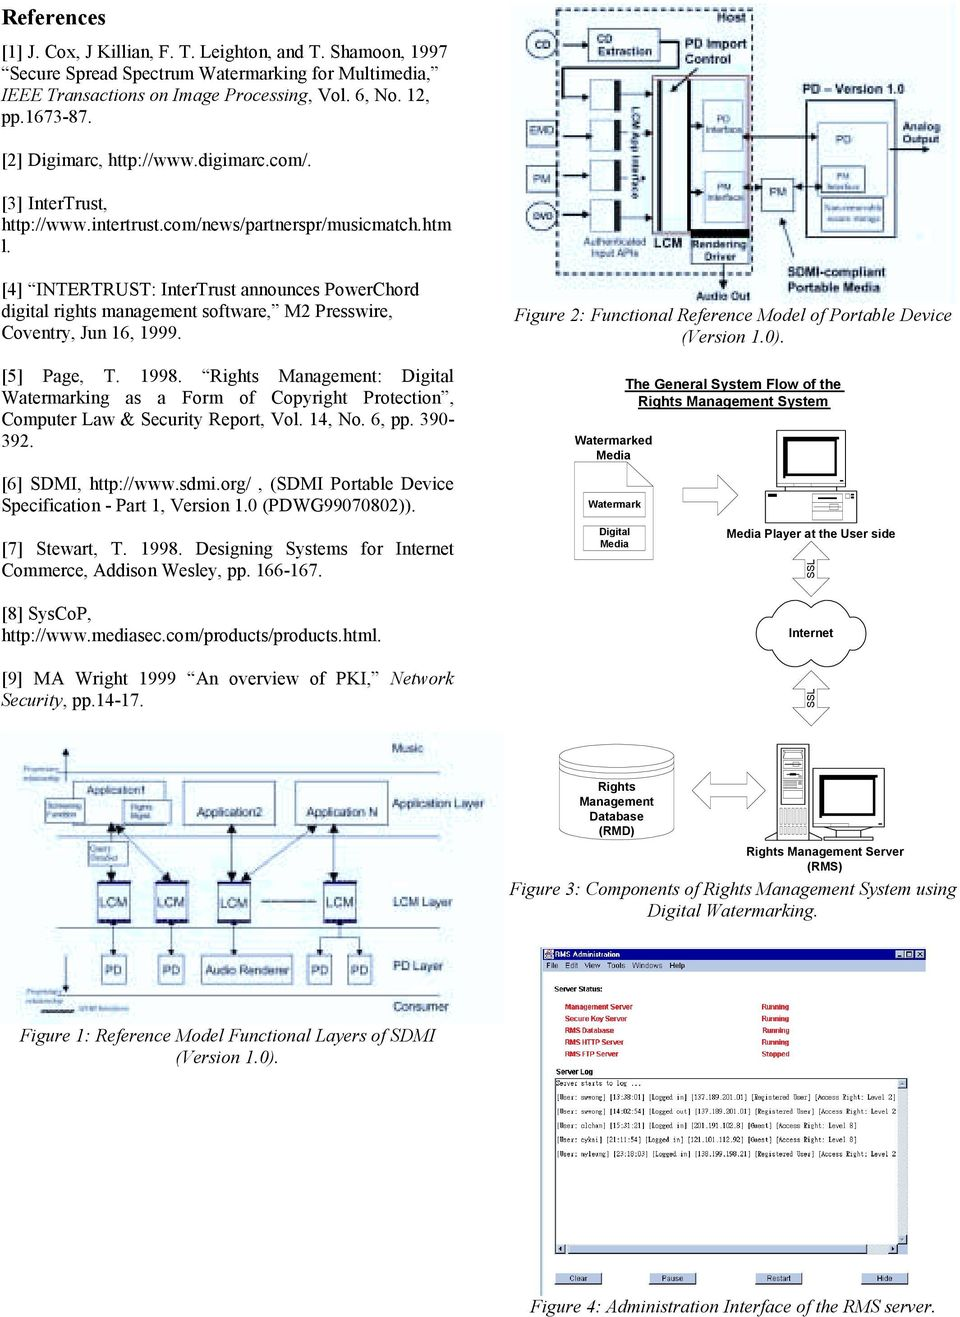 [4] INTERTRUST: InterTrust announces PowerChord digital rights management software, M2 Presswire, Coventry, Jun 16, 1999. [5] Page, T. 1998.